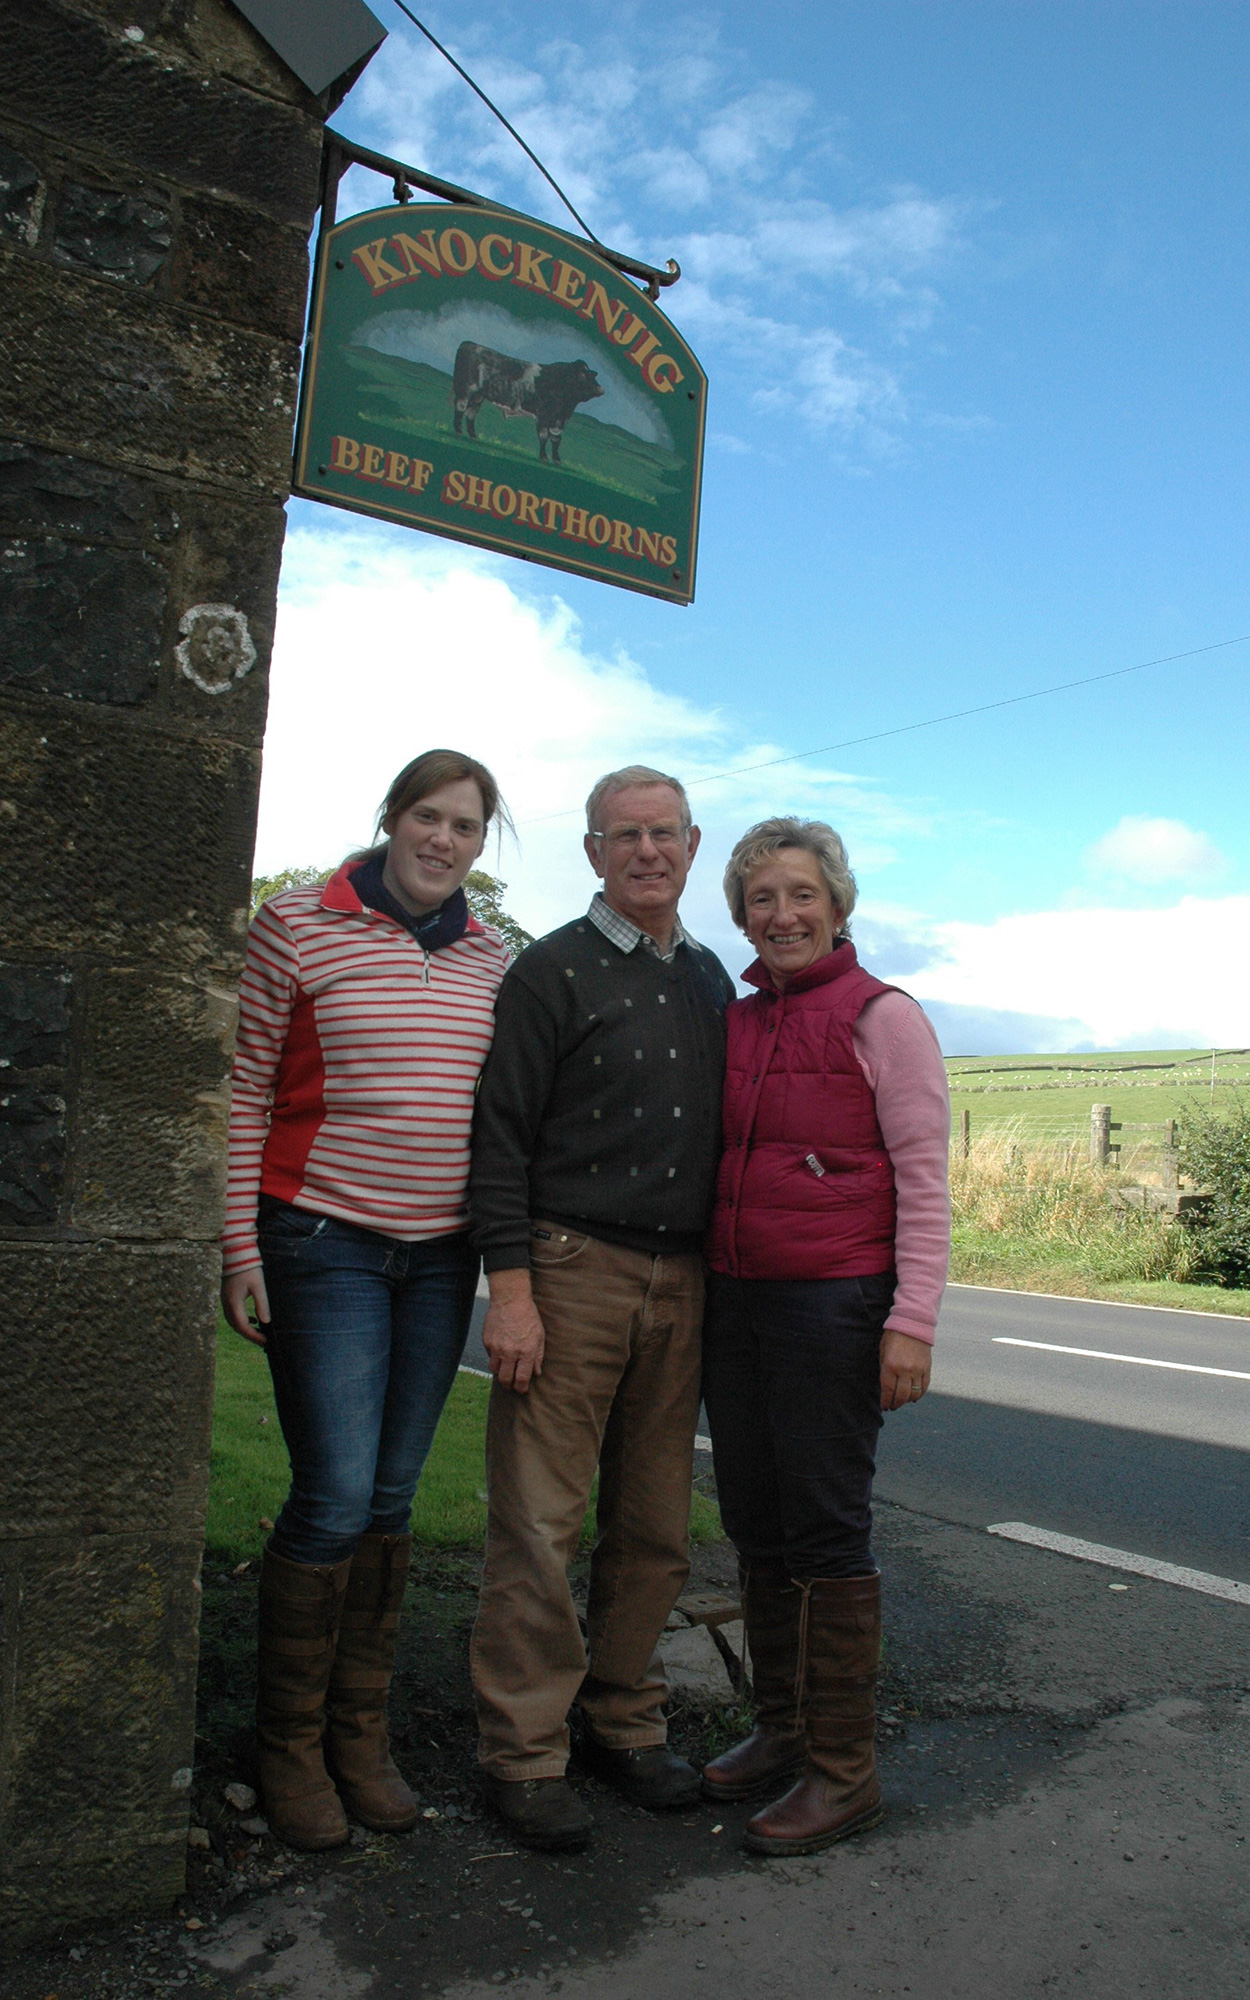 David and Rosemary Dickie with their daughter, Catriona